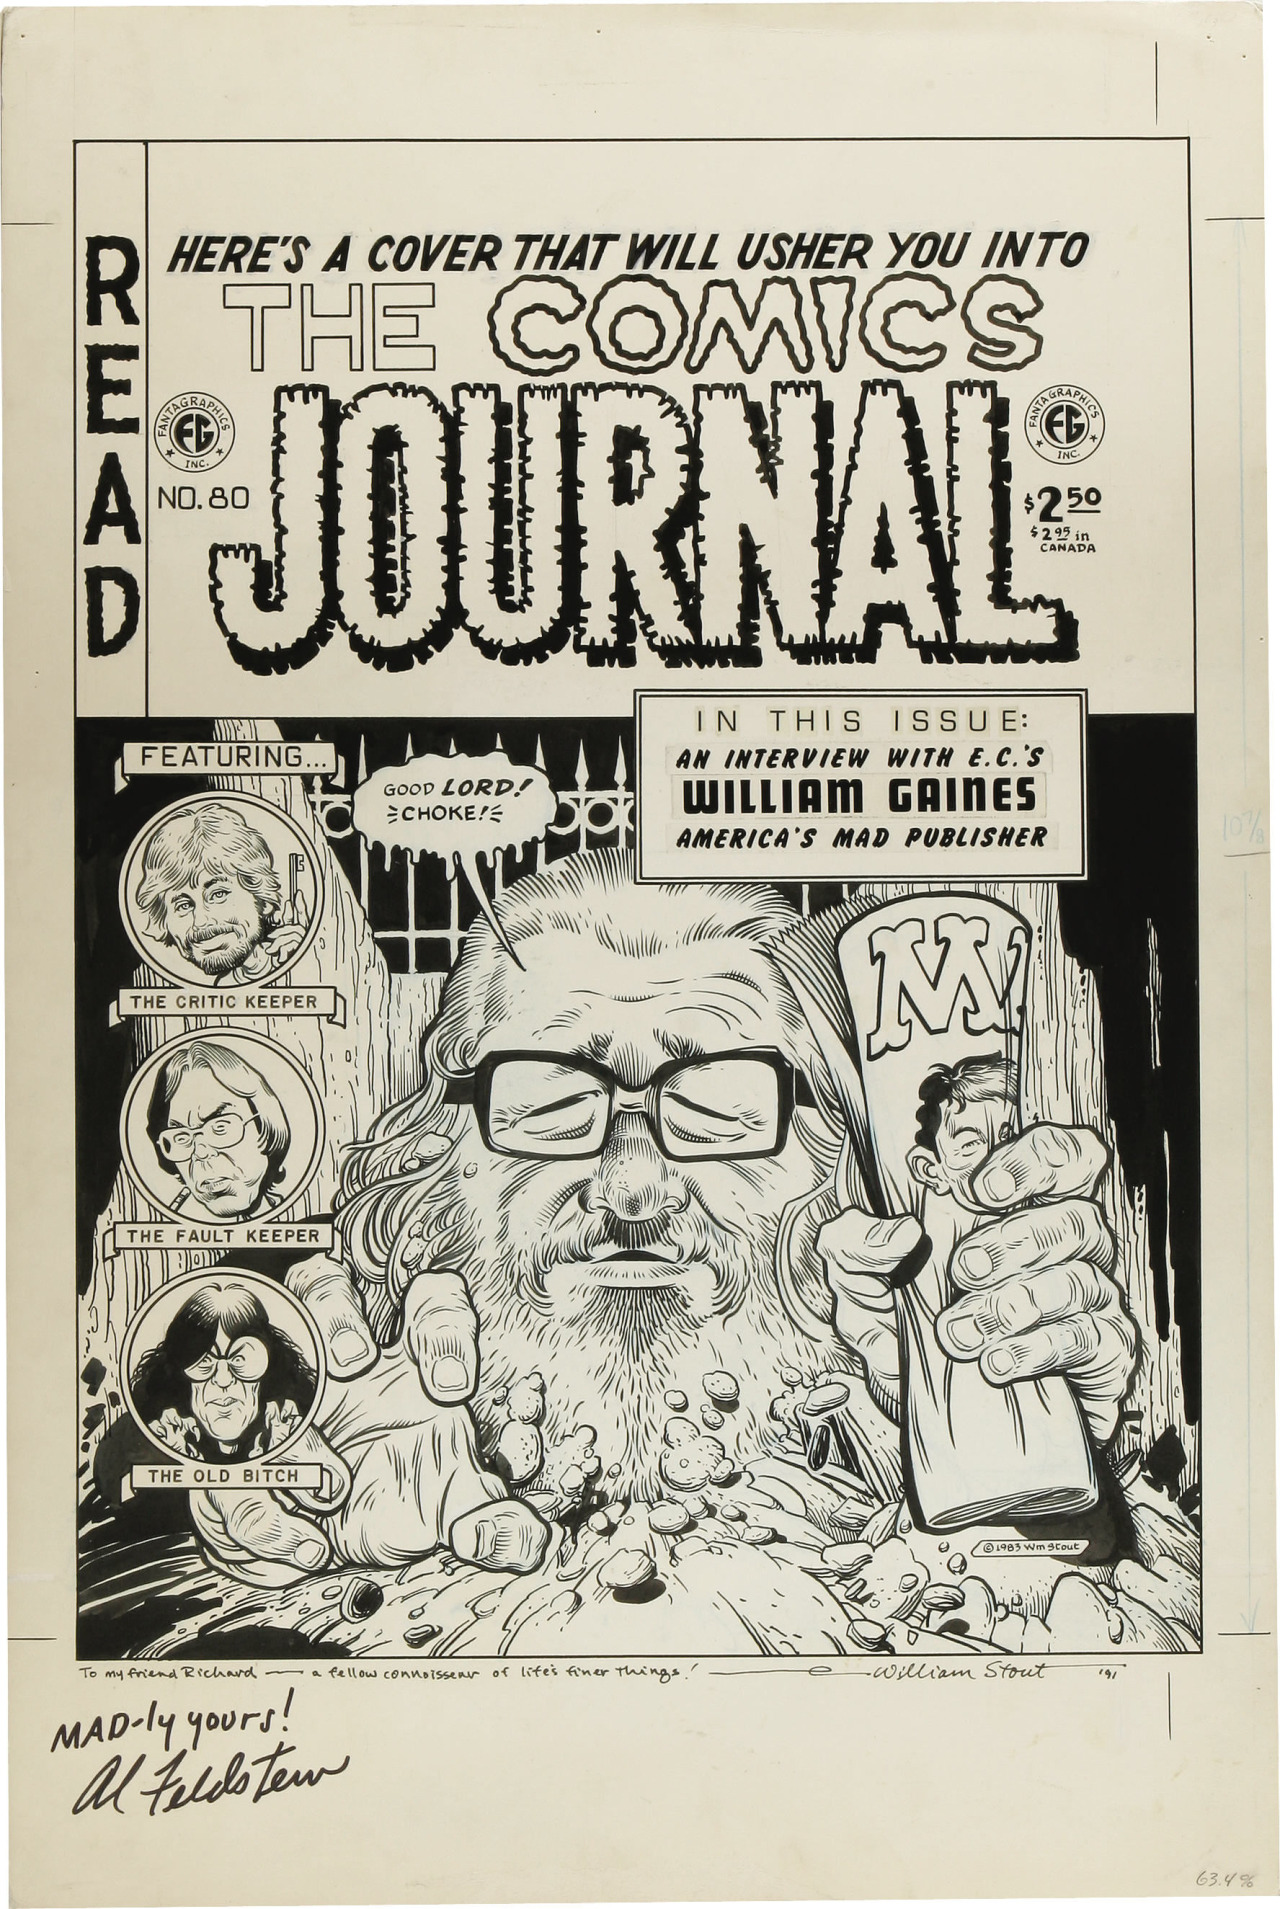 Artist of the Day: William Stout